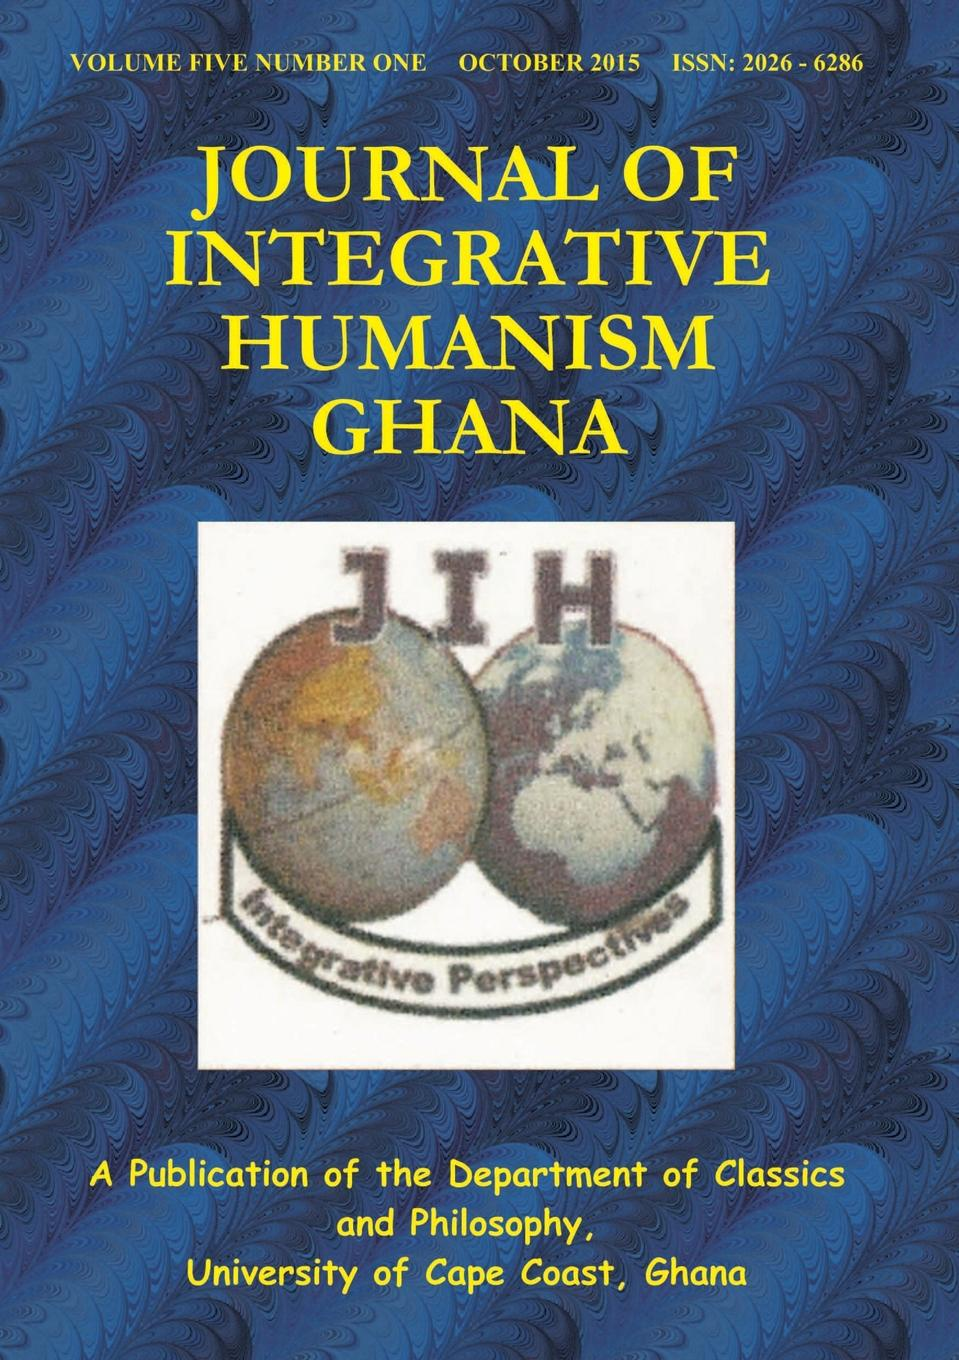 Ghana Departm University of Cape Coast Journal of Integrative Humanism Vol. 5 No. 1 stephen angle c contemporary confucian political philosophy